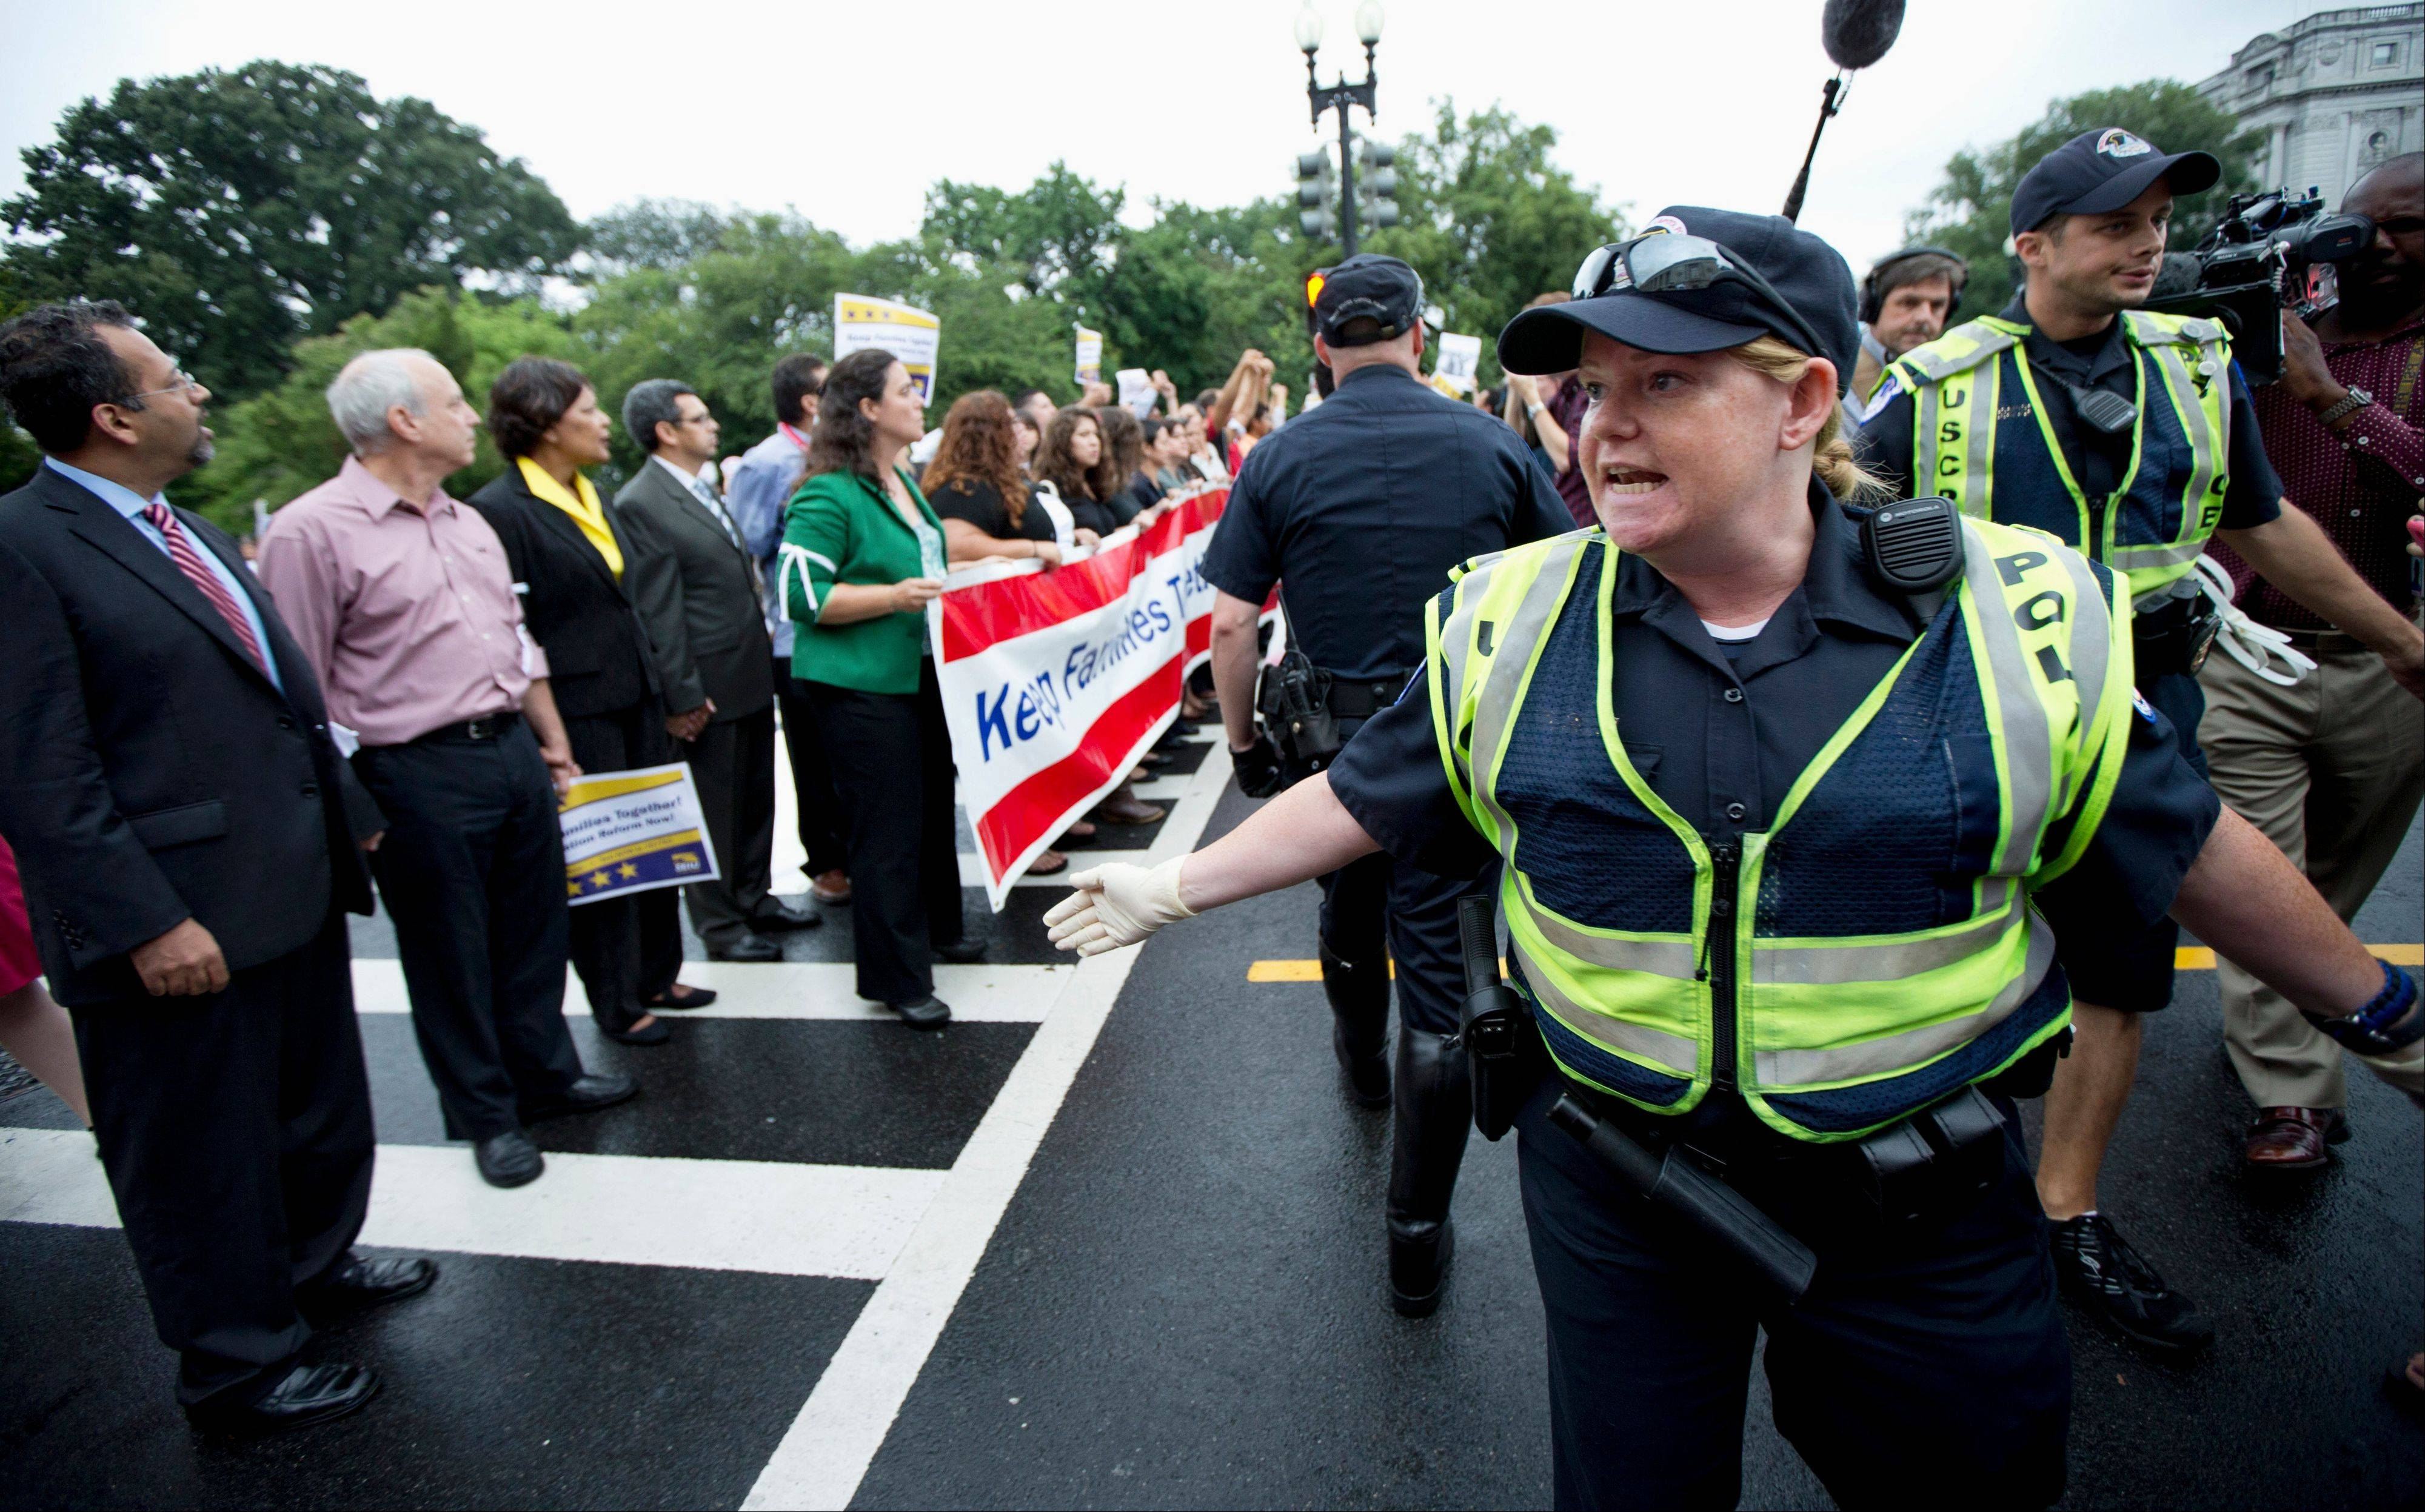 Capitol Hill Police officers try to clear a street that was blocked by immigration reform supporters during a rally protesting immigration policies and the House GOP�s inability to pass a bill that contains a pathway to citizenship.